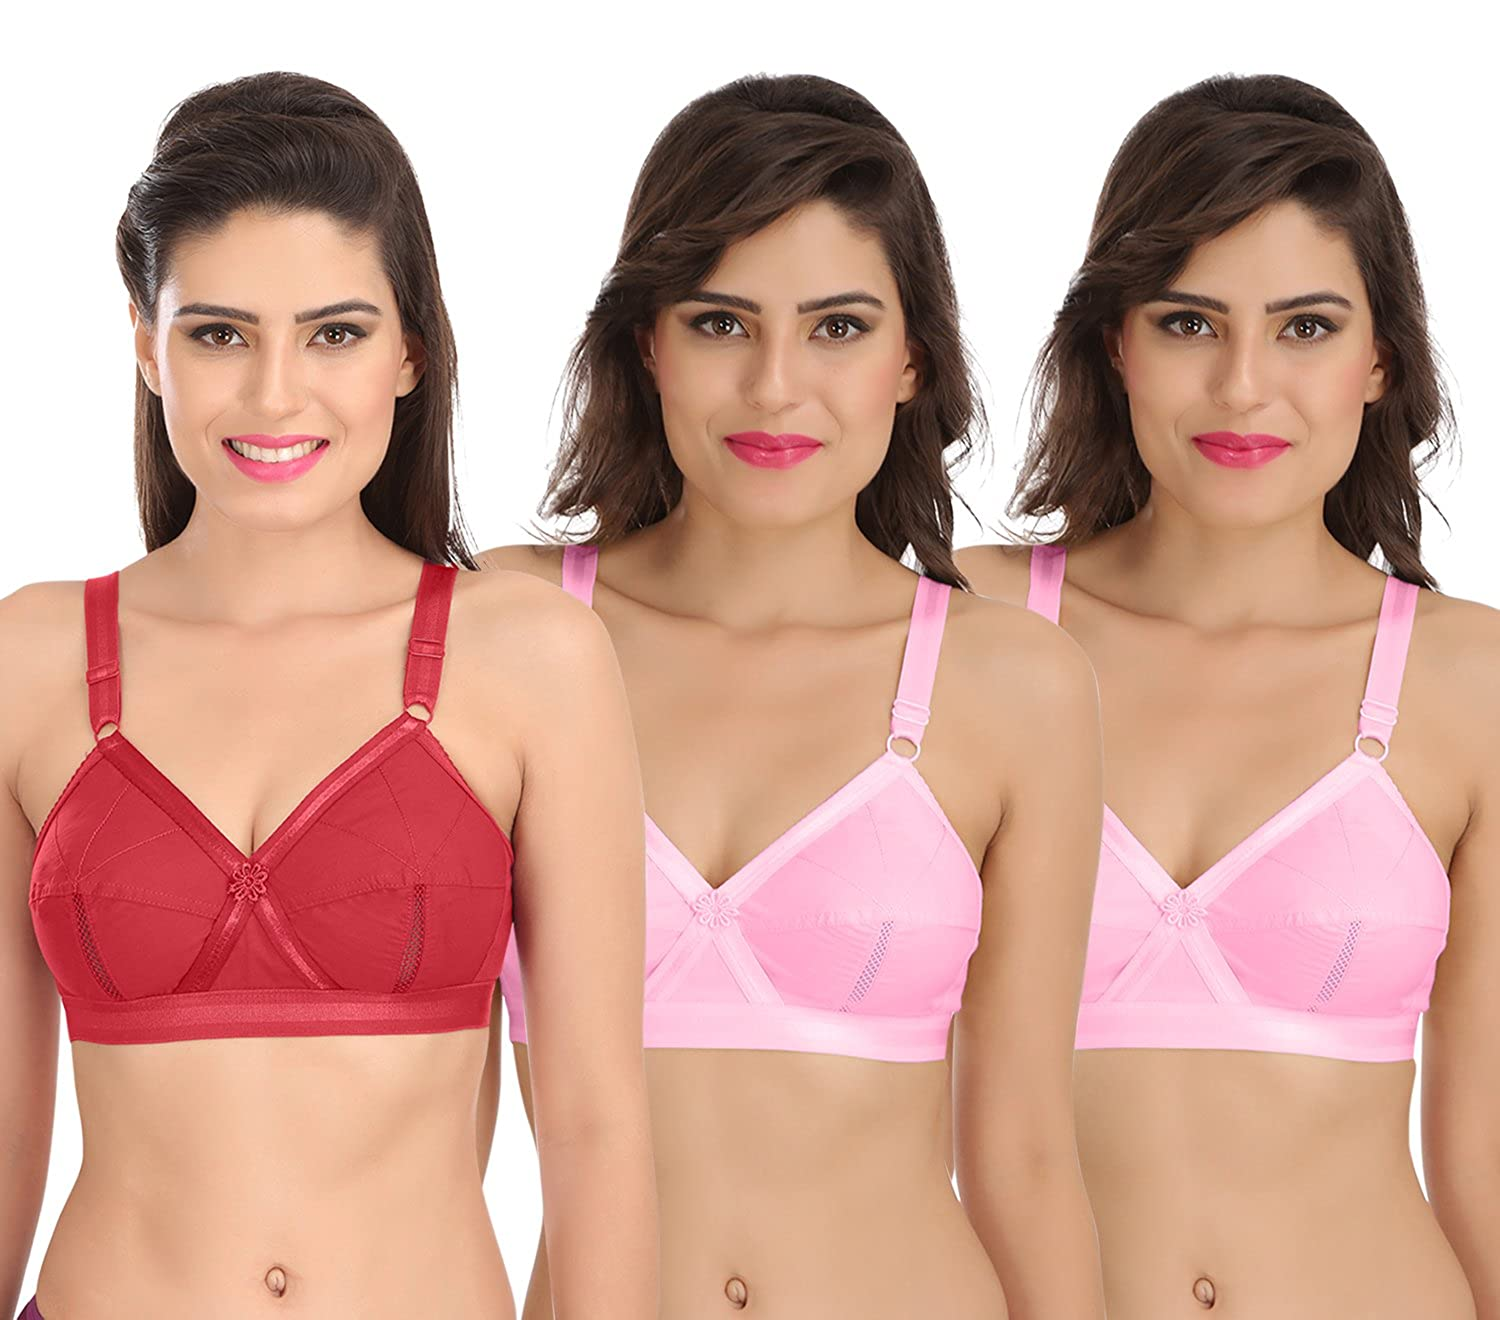 e71261adeb Sona Perfecto Women Plus Size Cotton Bra- Full Coverage Non Padded Pack of  3 Size 40B at Amazon Women s Clothing store